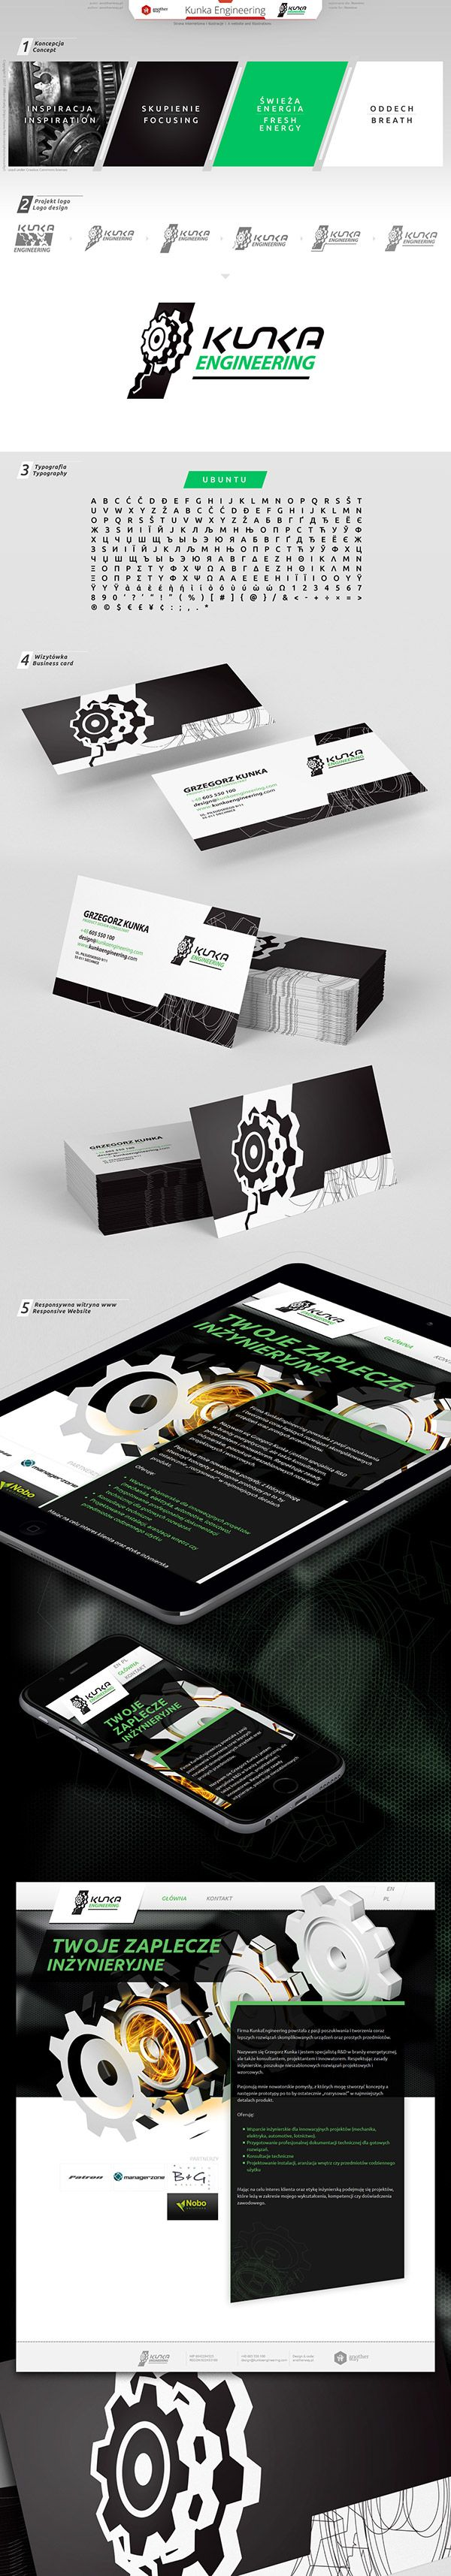 Kunka Engineering #businesscard, #logo, #Website, #wordpress, #gears, #responsive, #energy